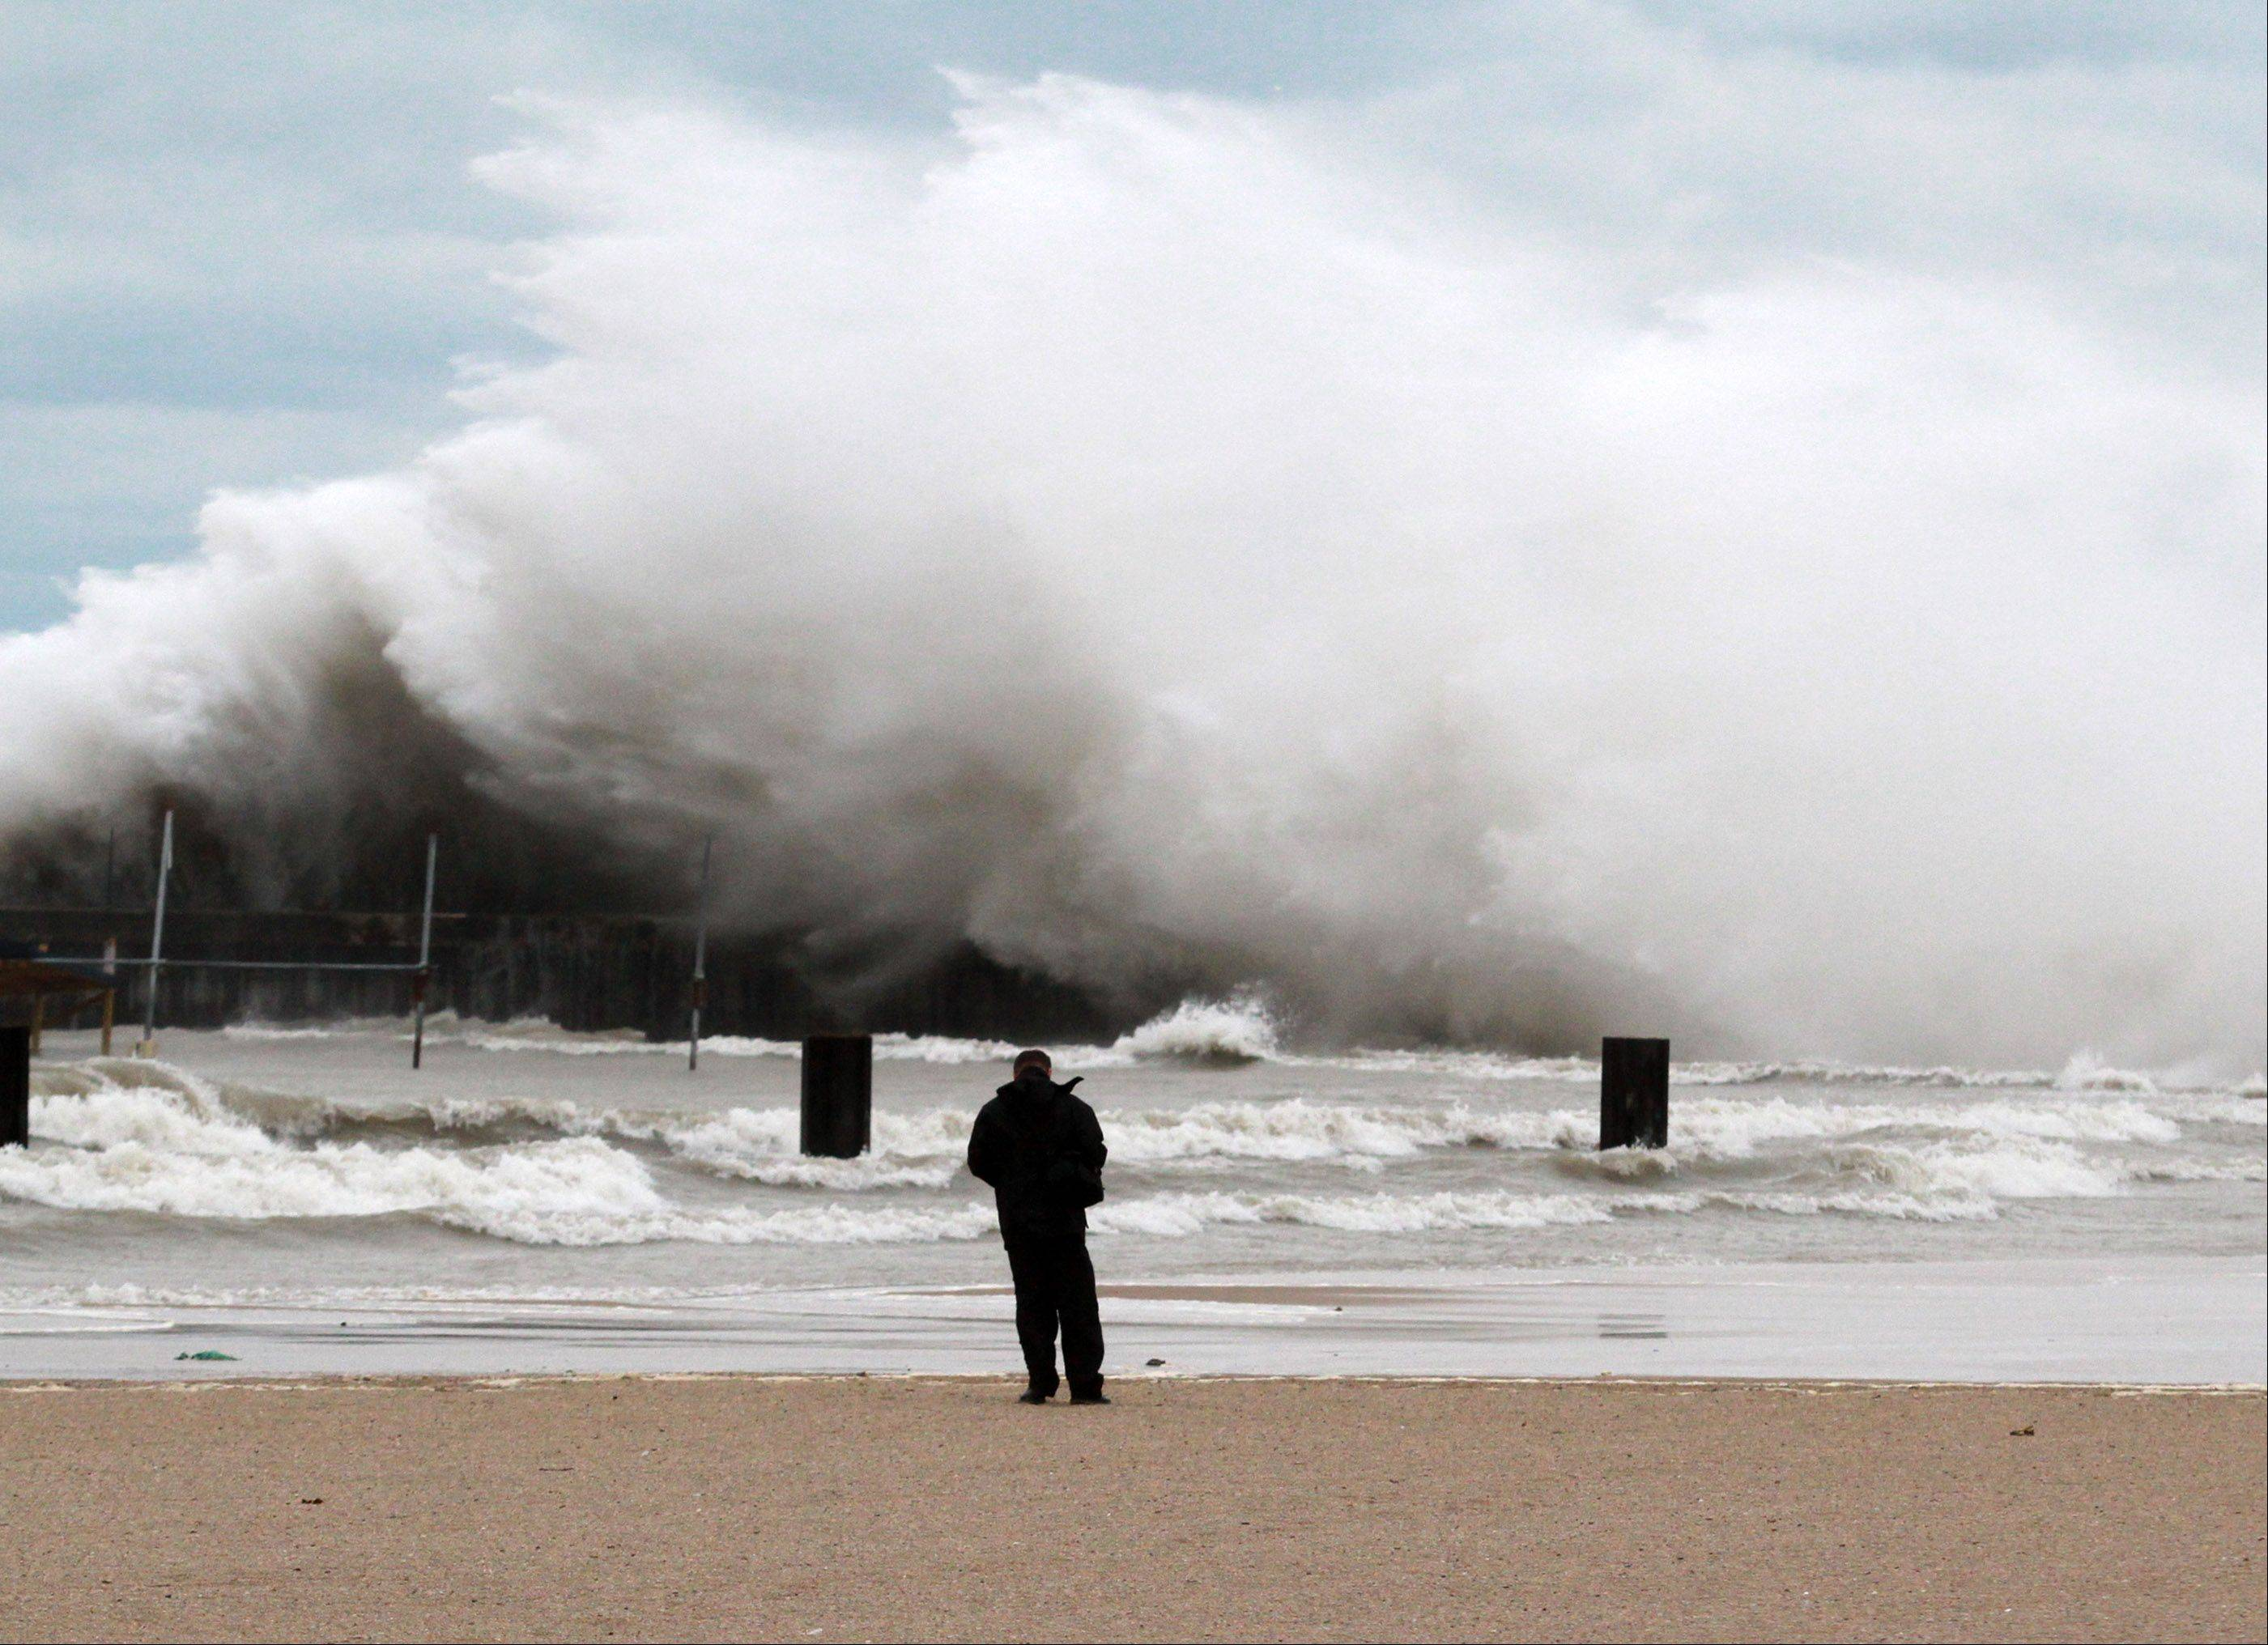 Alain Marginean of Chicago takes pictures of the large waves at North Avenue Beach in Chicago on Tuesday, October 30.